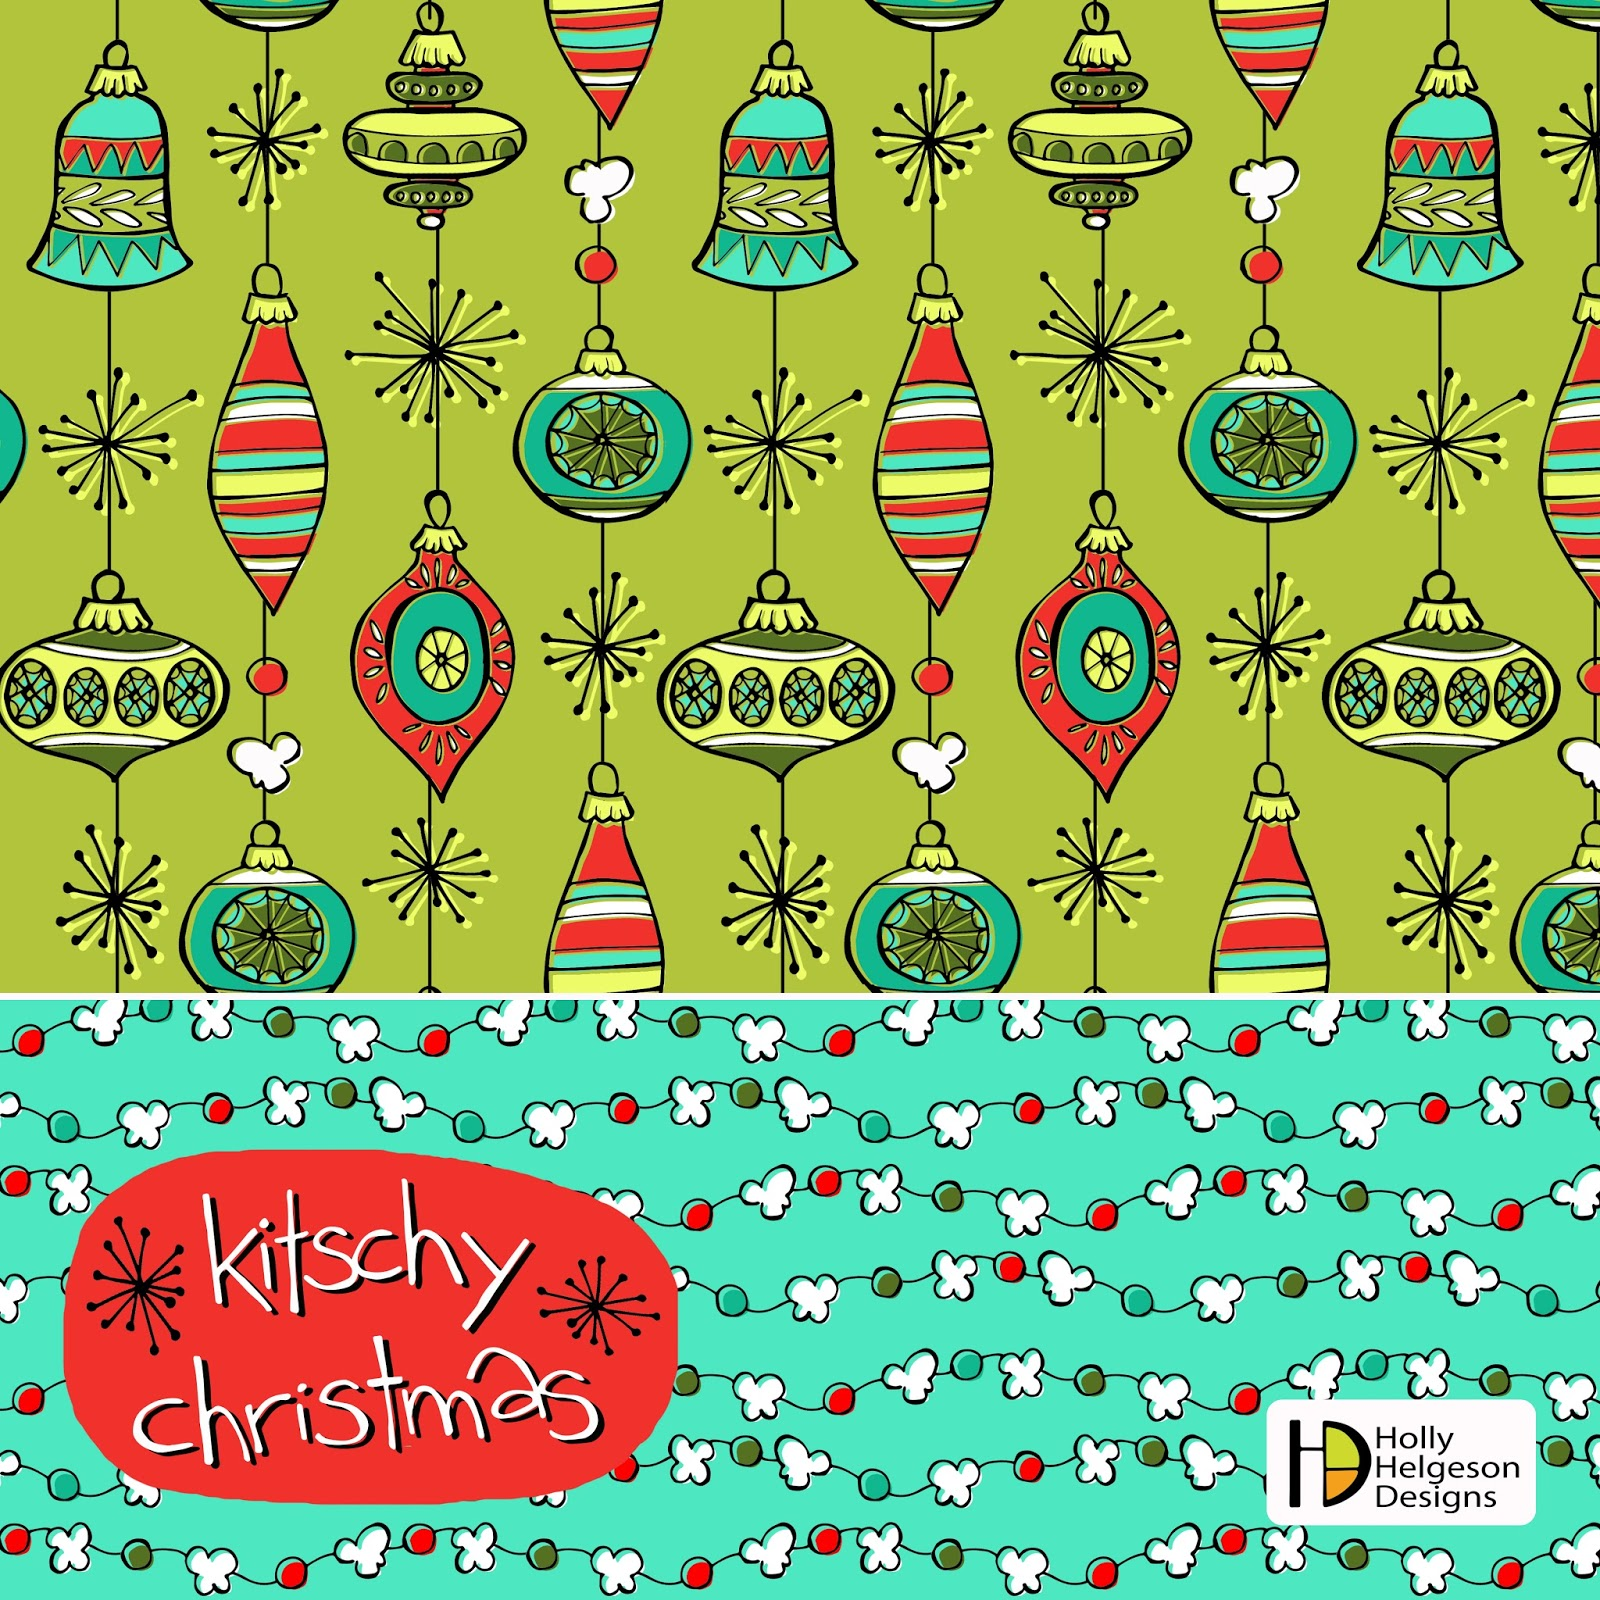 Holly Helgeson: Kitschy Christmas...Did someone say POPCORN?!